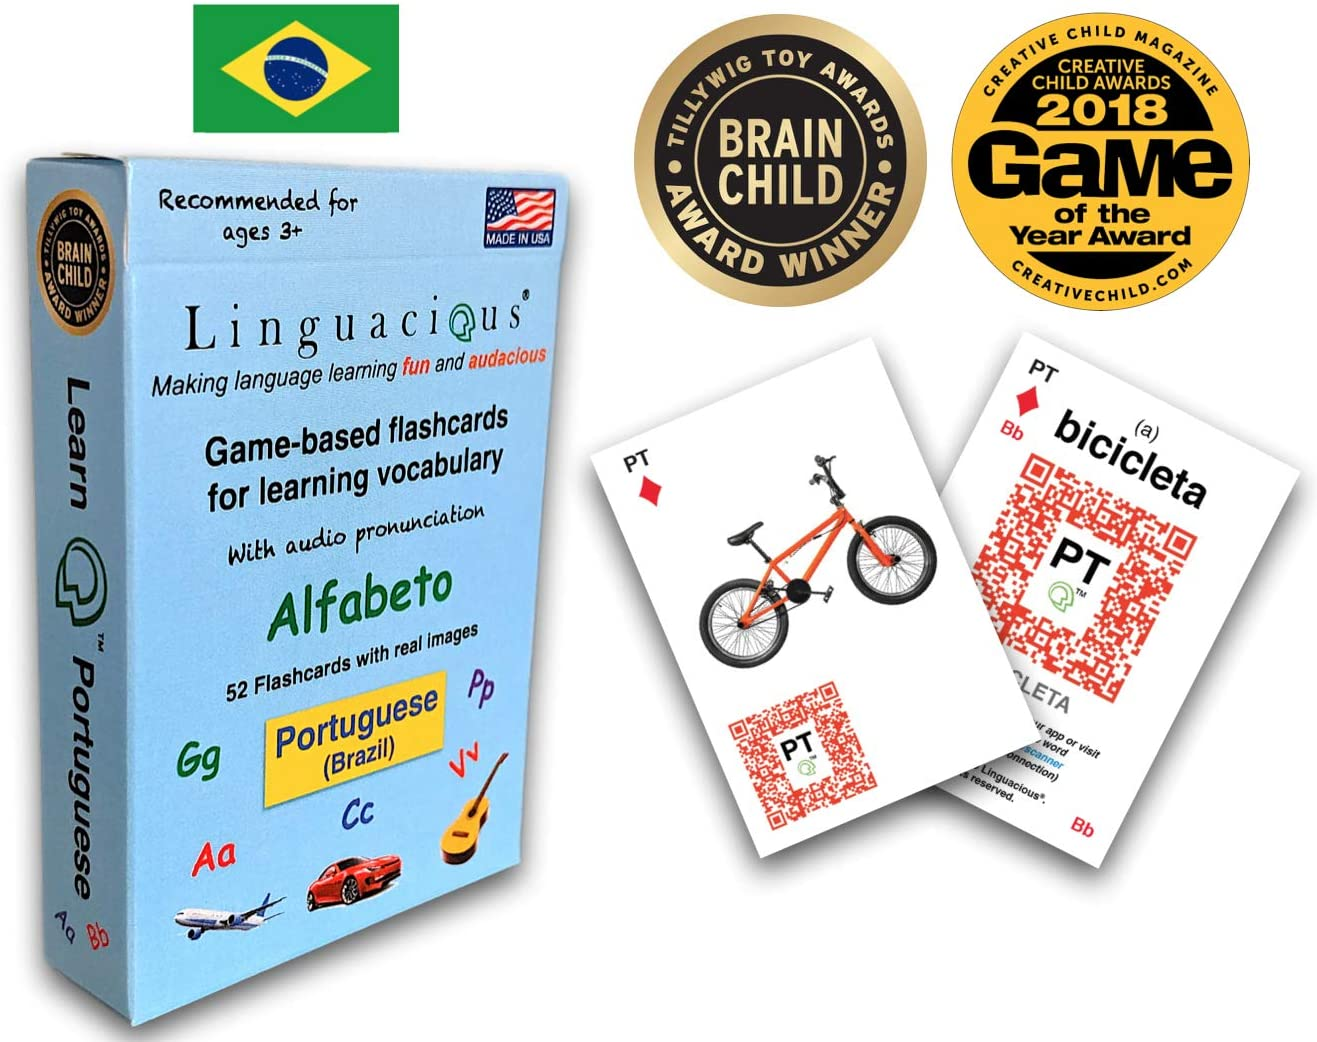 Linguacious Award-Winning Learn Portuguese O Alfabeto Flashcard Game for Kids - with Audio by Native Speaker!